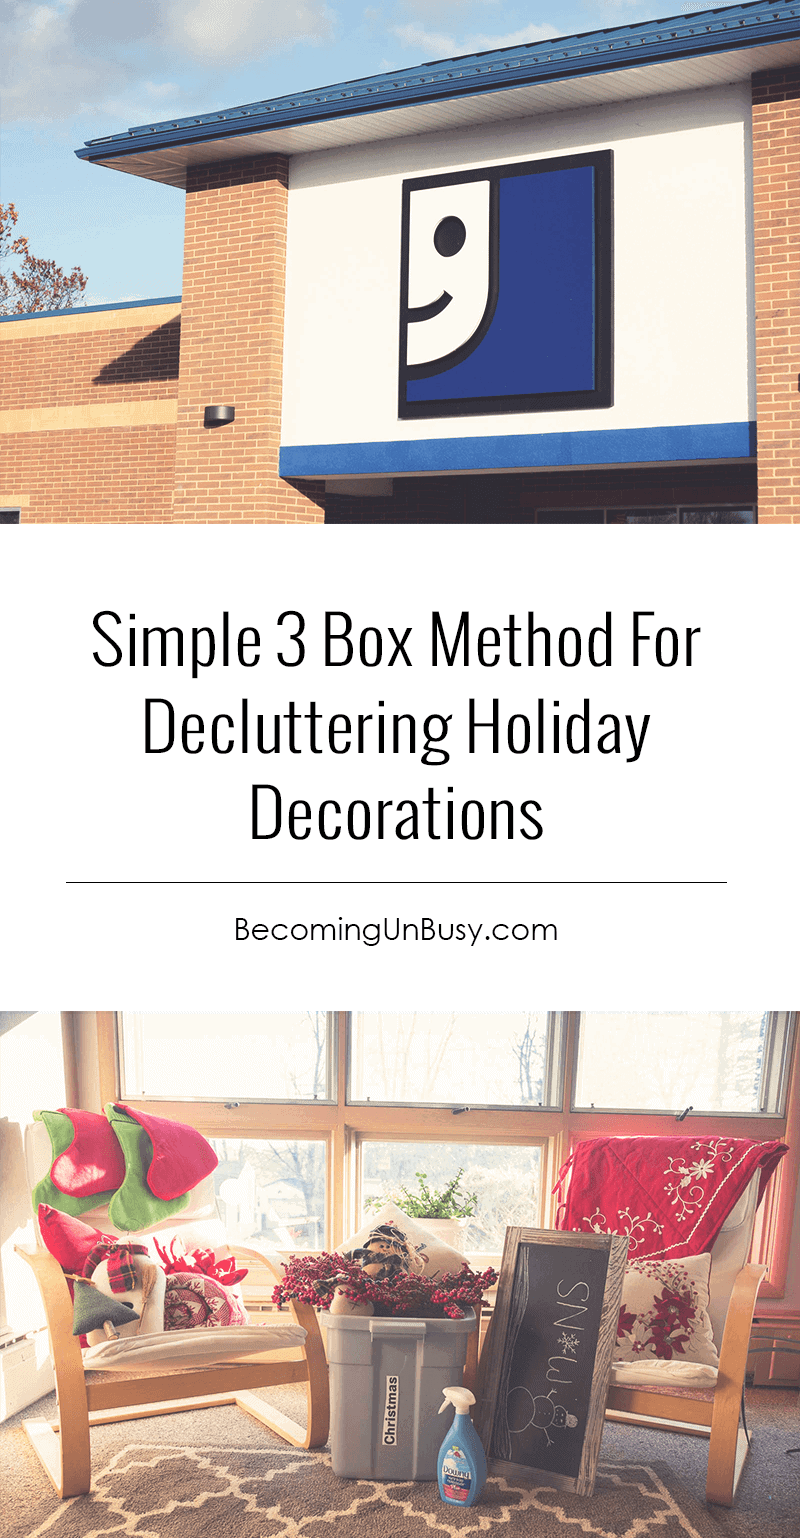 Simple Three Box Method for Decluttering Holiday Decorations #organize #declutter #Christmas *Love this post!